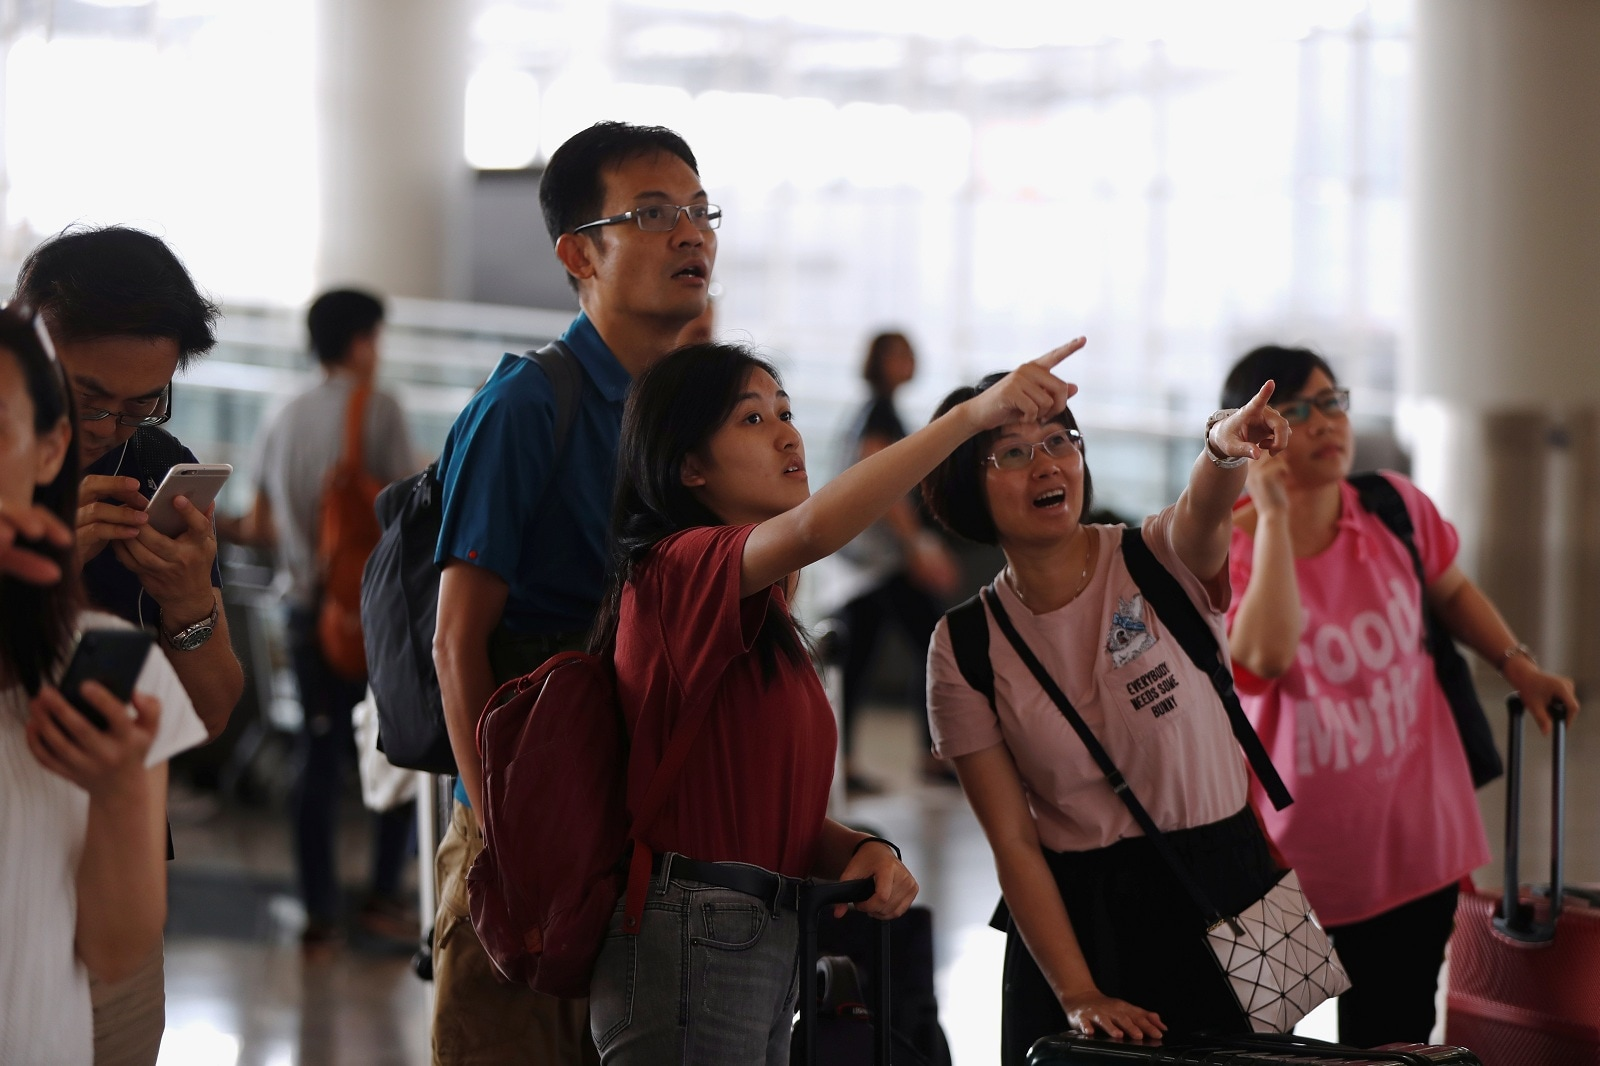 Passengers react as they check the flight information board a day after flights were halted due to a protest, at Hong Kong International Airport, China August 13, 2019. REUTERS/Issei Kato